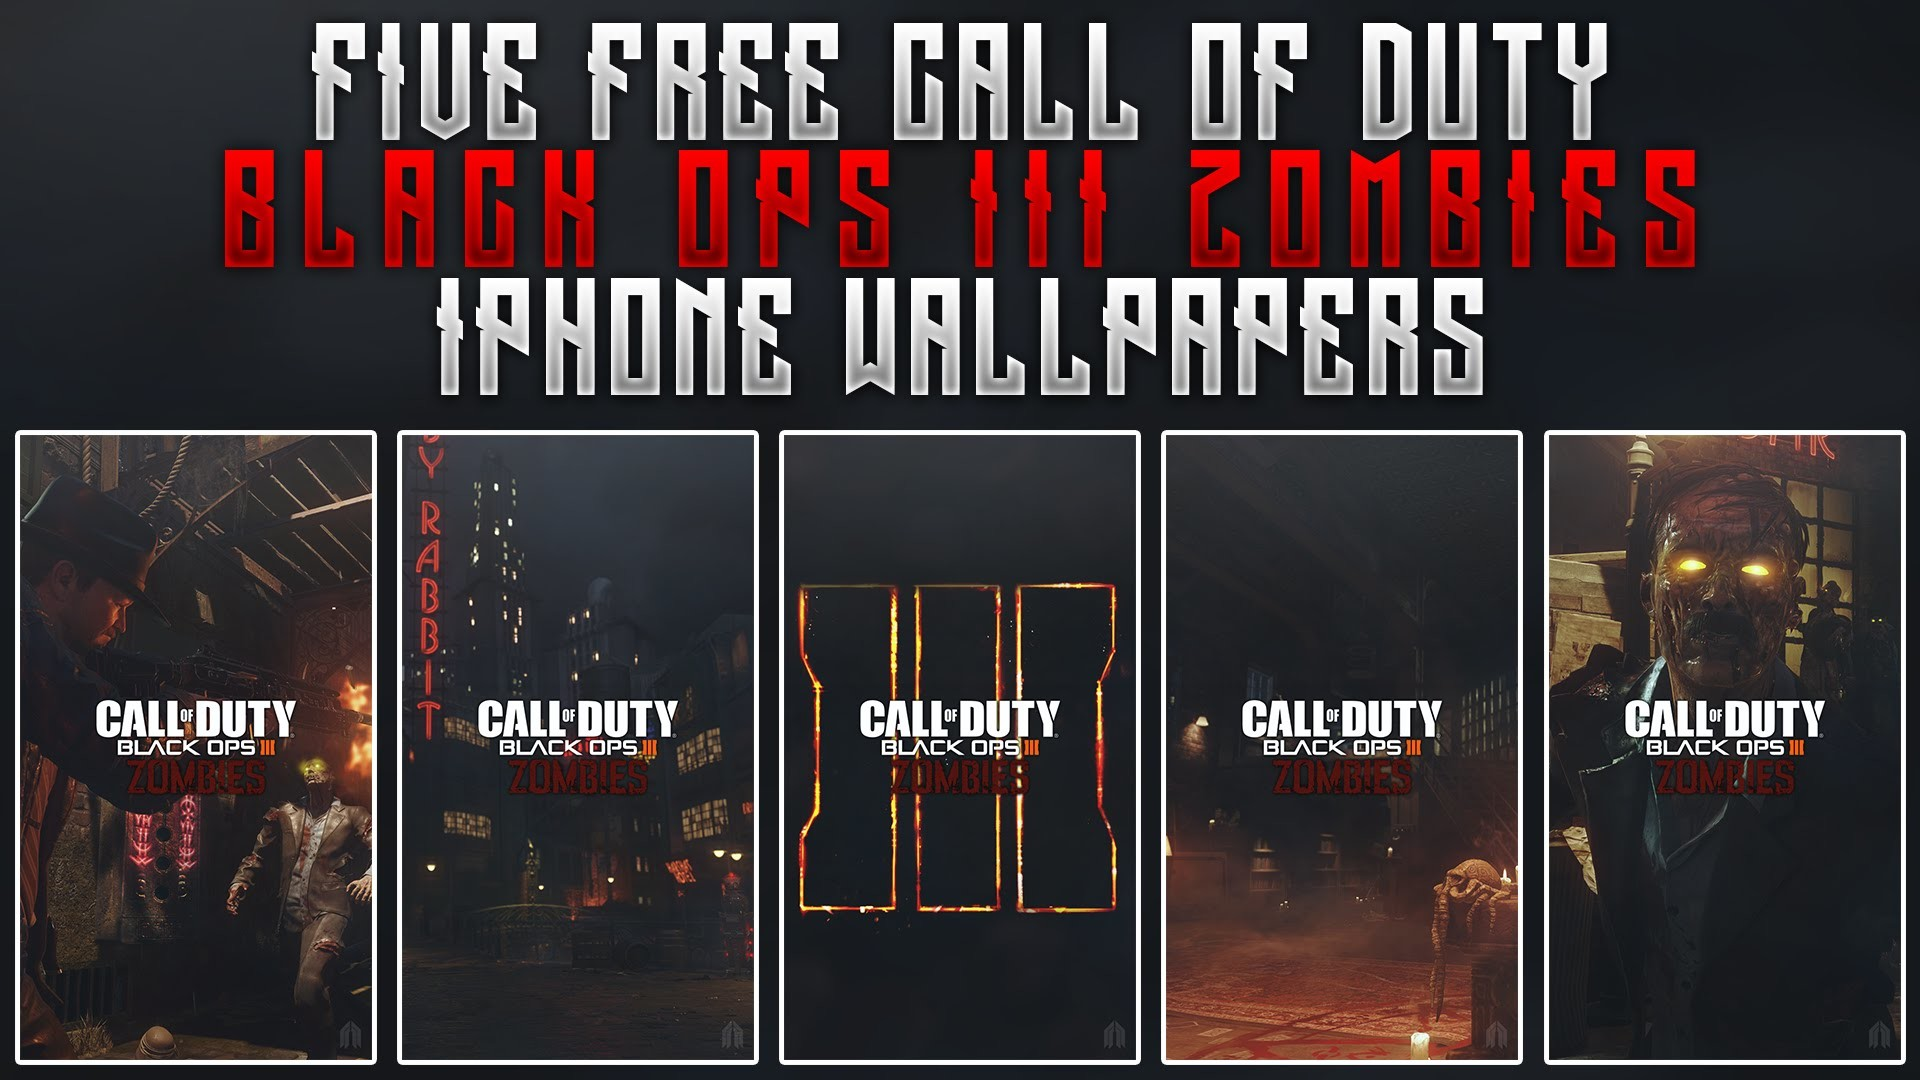 1920x1080 GFX Black Ops III Zombie iPhone Wallpaper Designs Free Wallpaper Pack -  YouTube